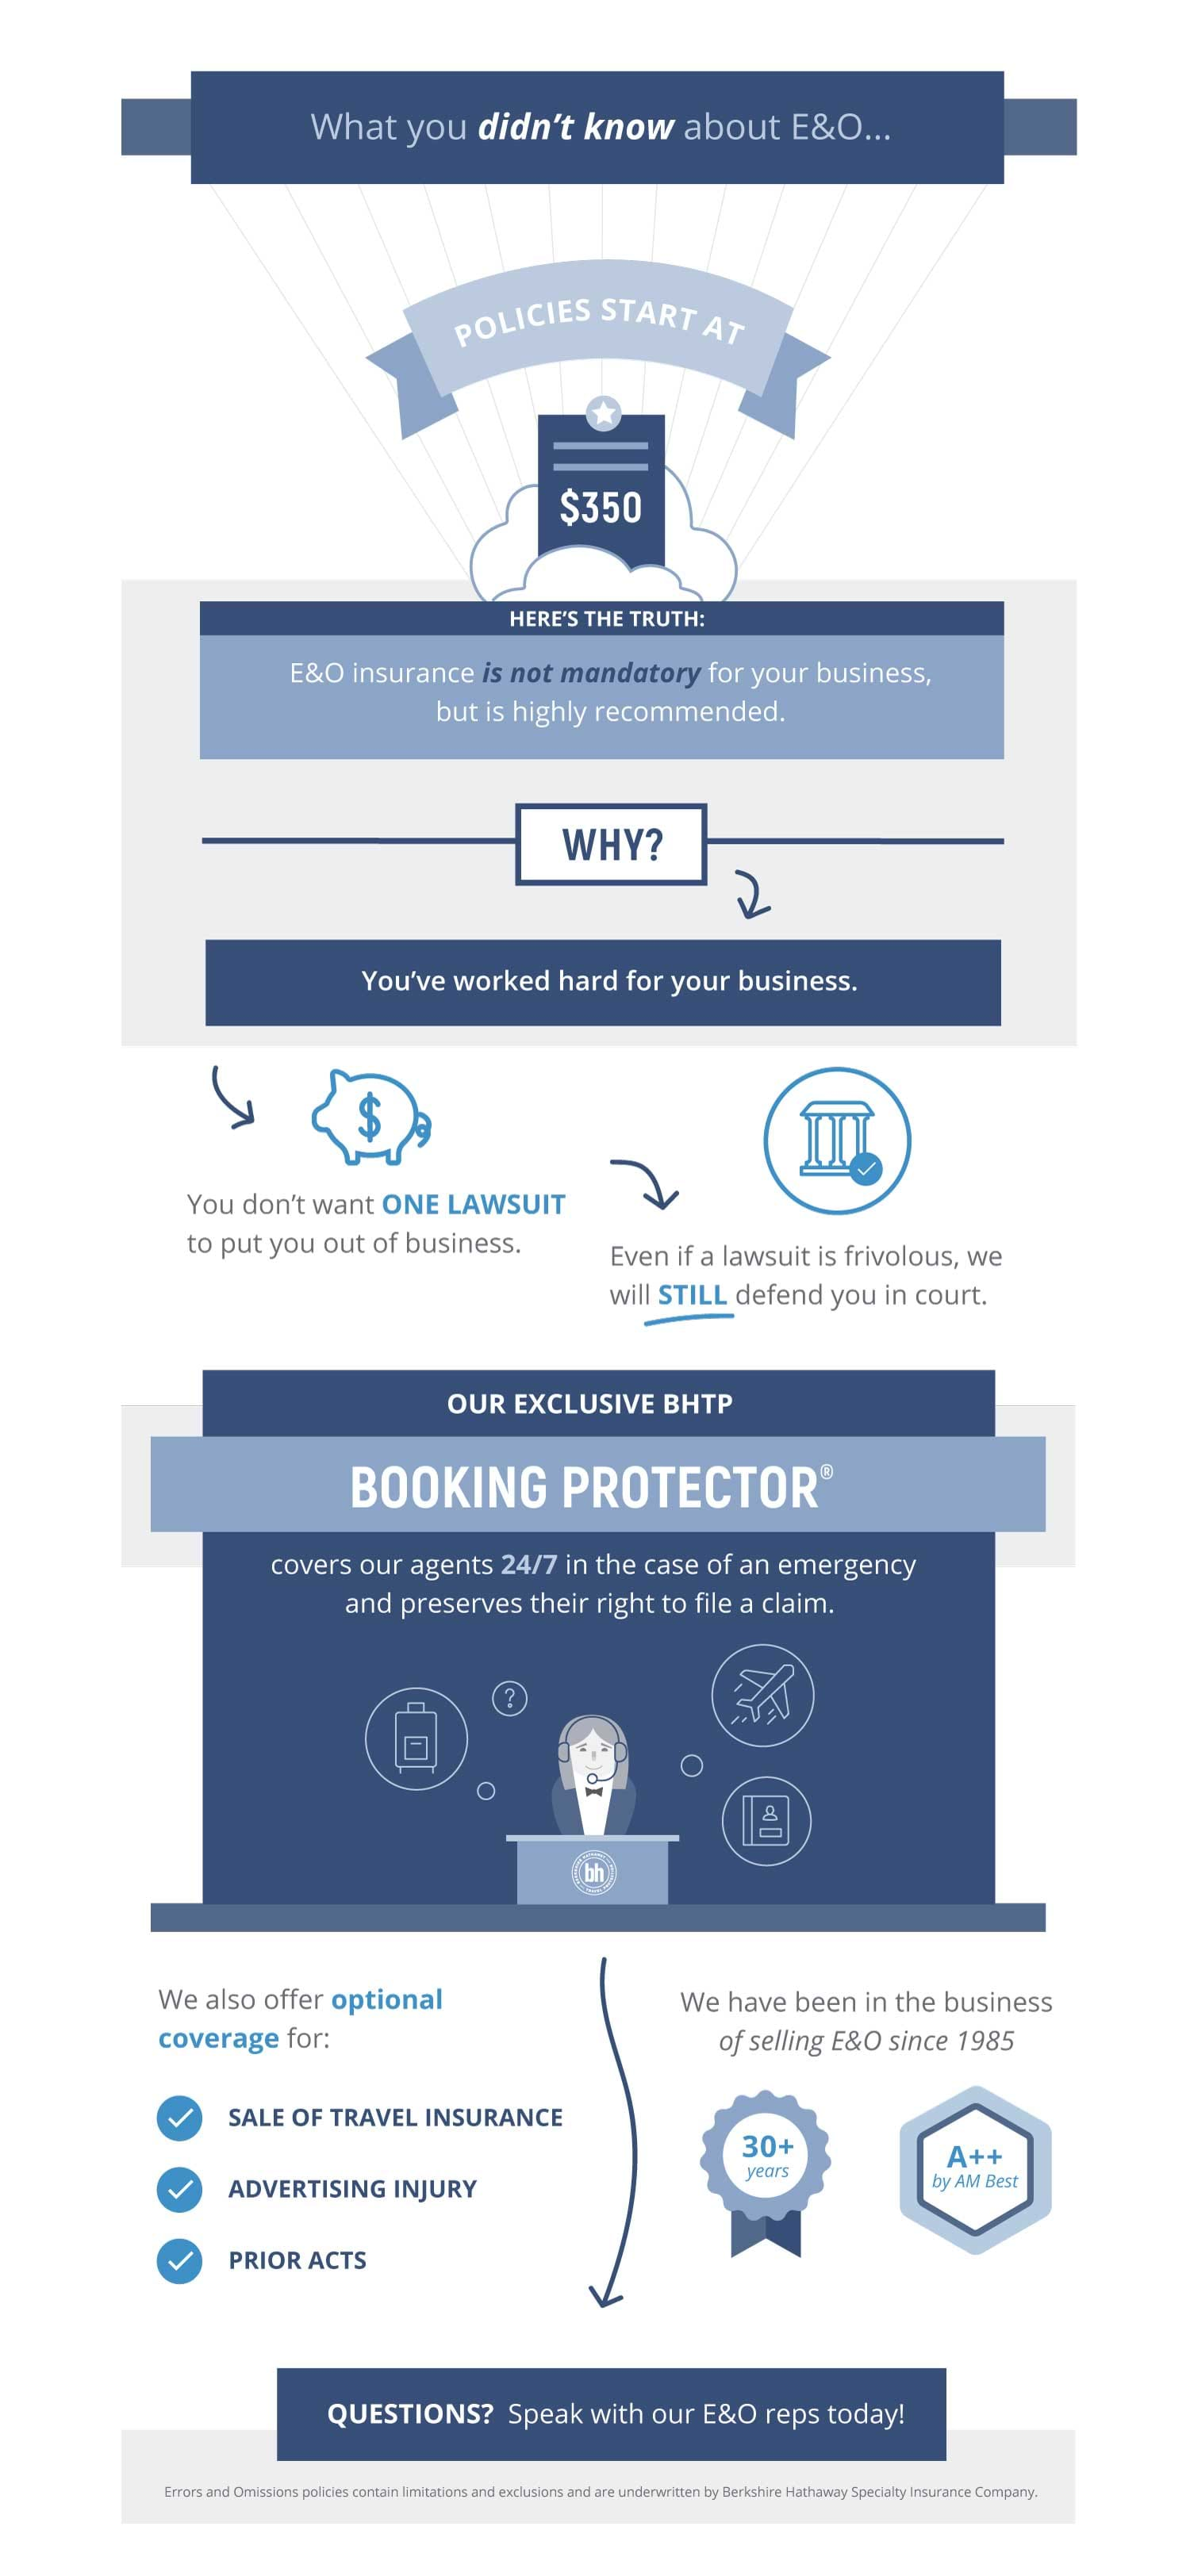 Infographic about errors and omissions insurance at Berkshire Hathaway Travel Protection